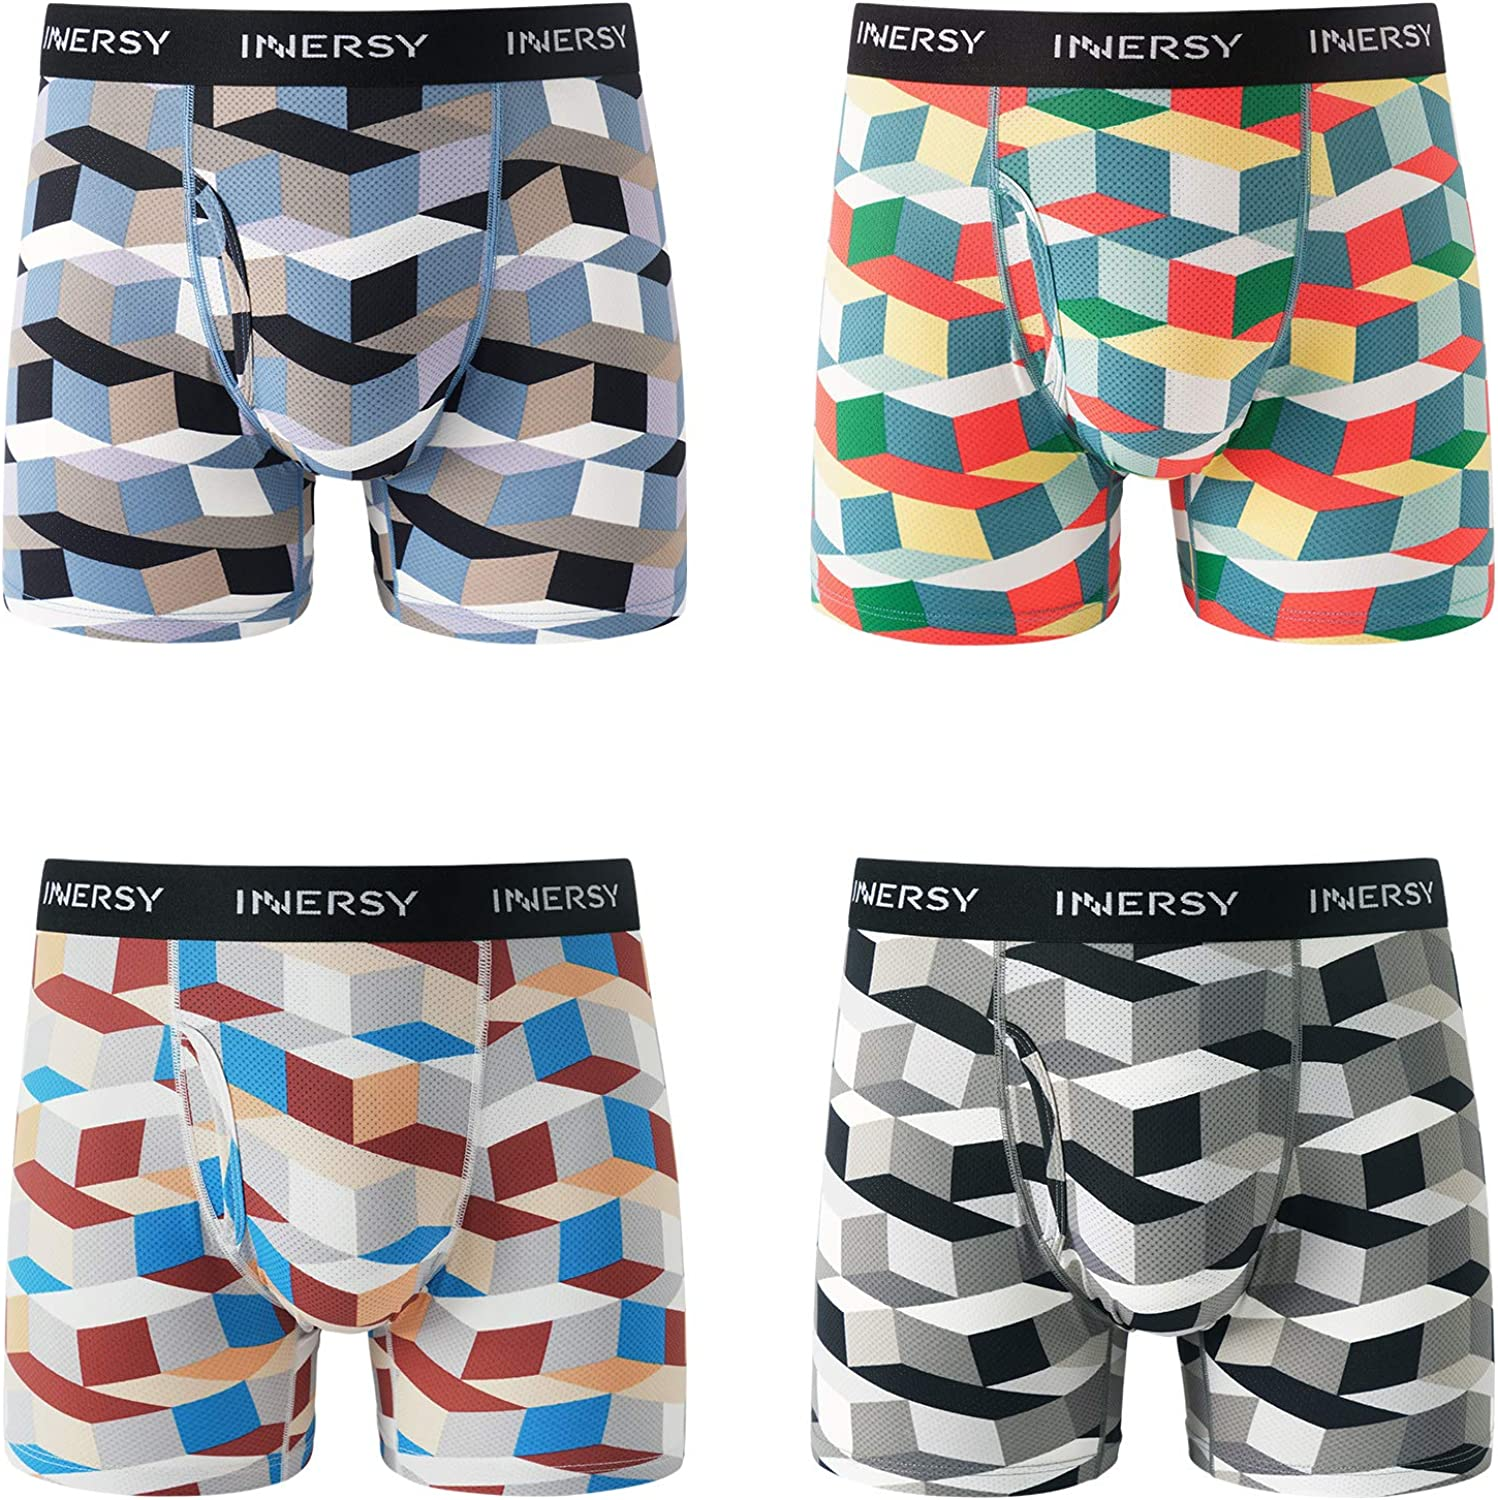 INNERSY Men's Mesh Boxer Briefs Cooling Breathable Sports Underwear W/Fly 4-Pack